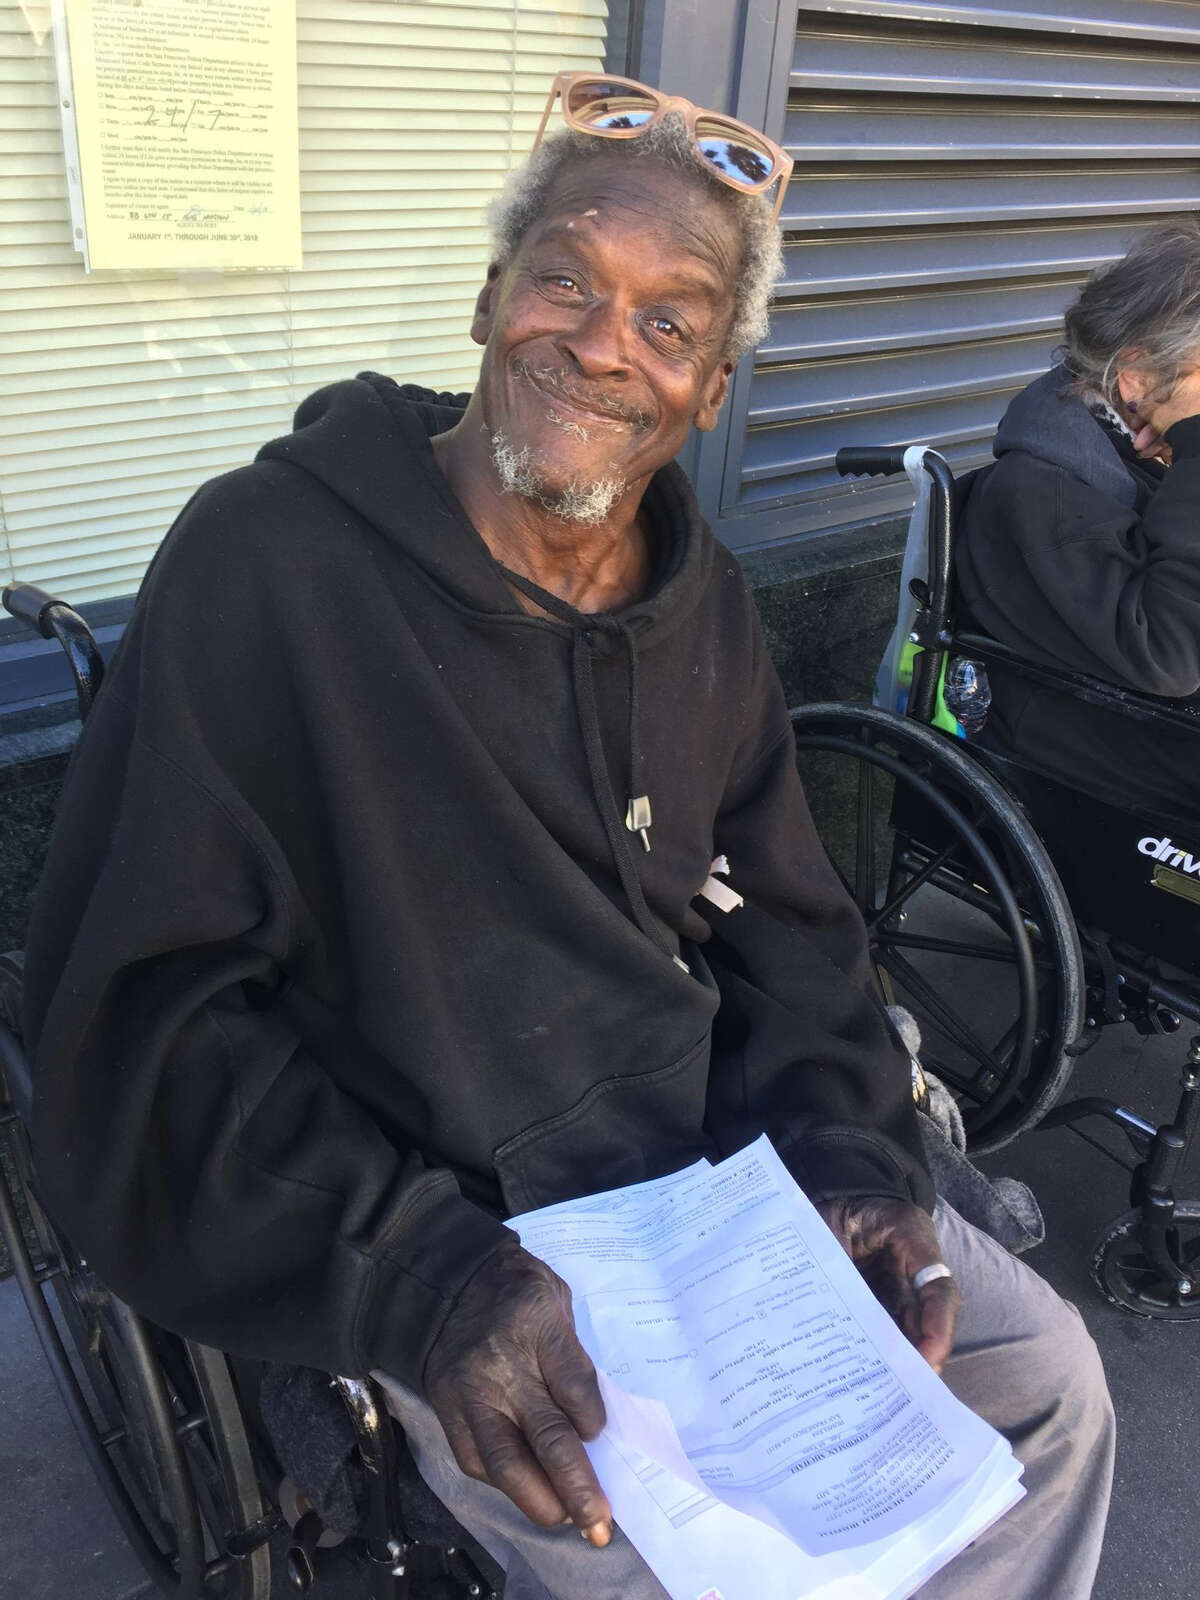 Michael Goodman, 69, was born in San Francisco in 1949. He has lived on the streets for three years and in an interview with SFGATE on Oct. 25, 2018, he was sharing papers with information on all the medications he takes for the chronic obstructive pulmonary disease he suffers from. He's in a wheelchair. He told SFGATE he studied electronics at a college in Los Angeles before going to work for Howard Hughes Aircraft Company.